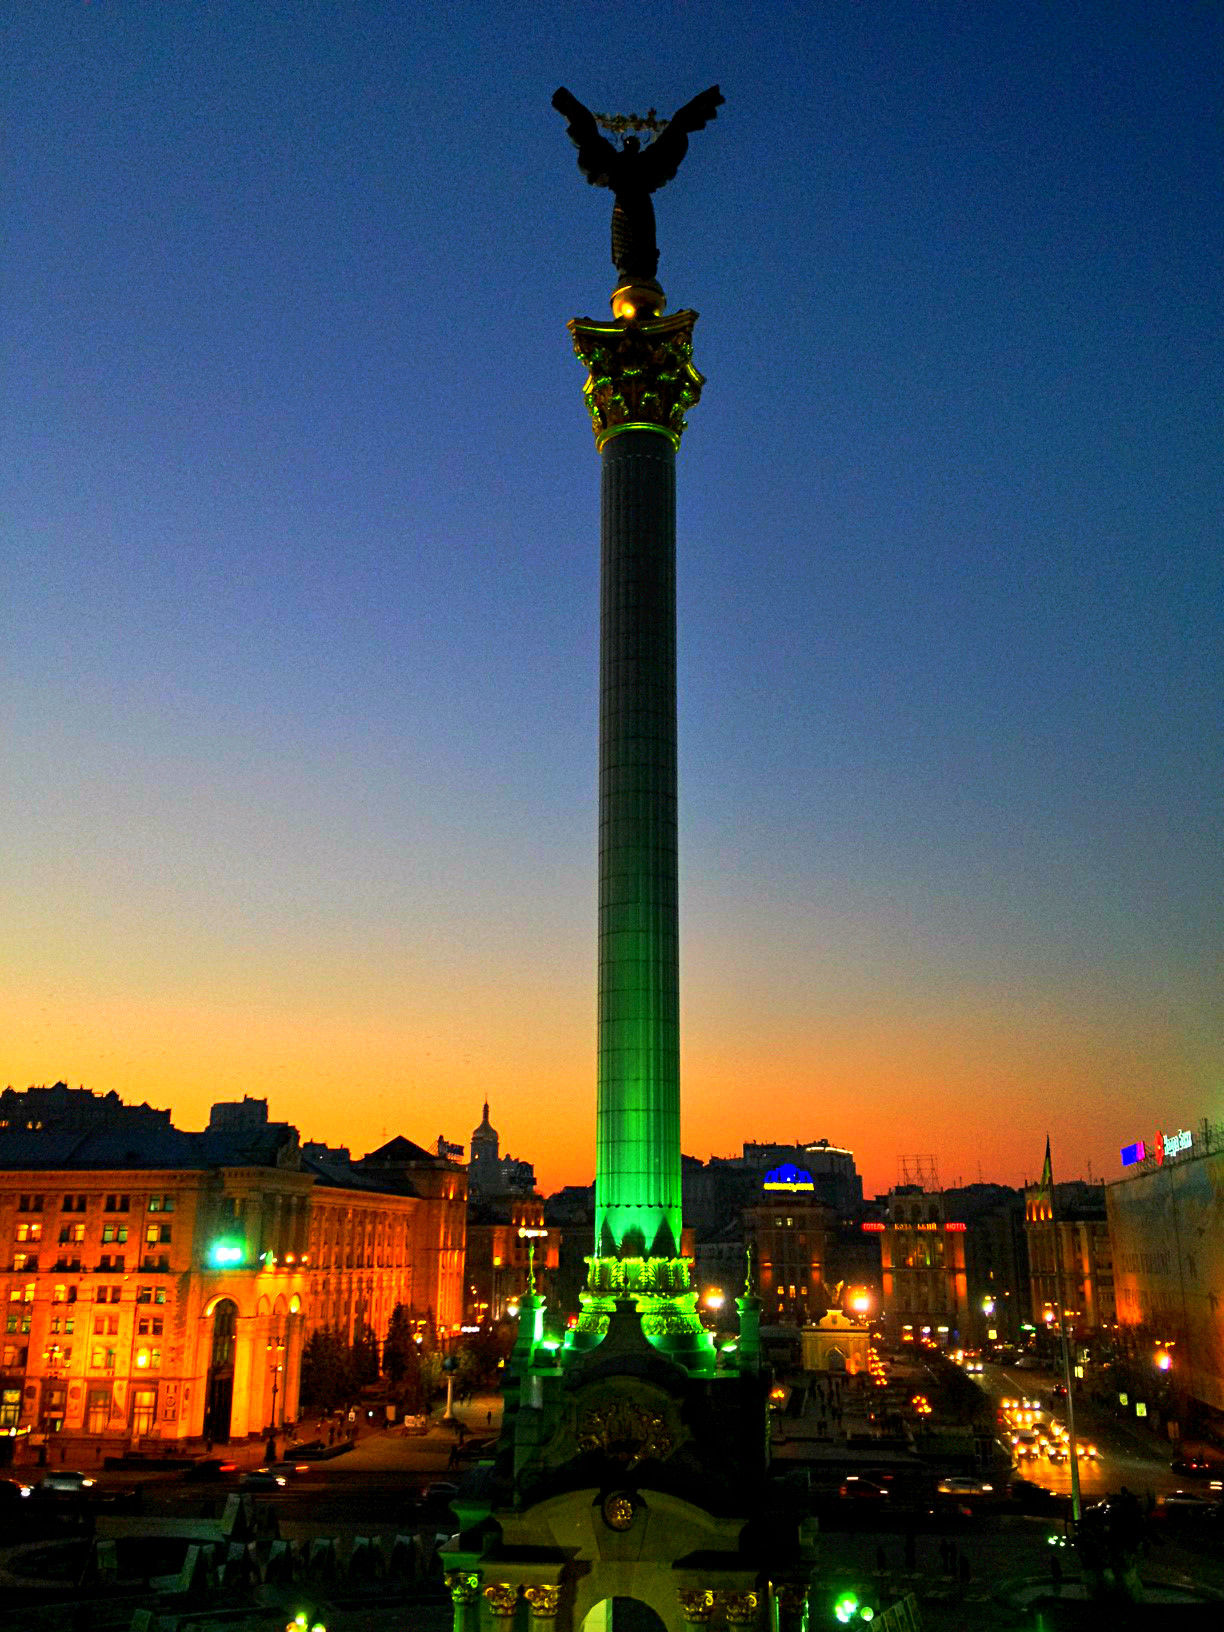 Centre of Maidan Square - Independency Column topped with a statue of Archangel Mikhail